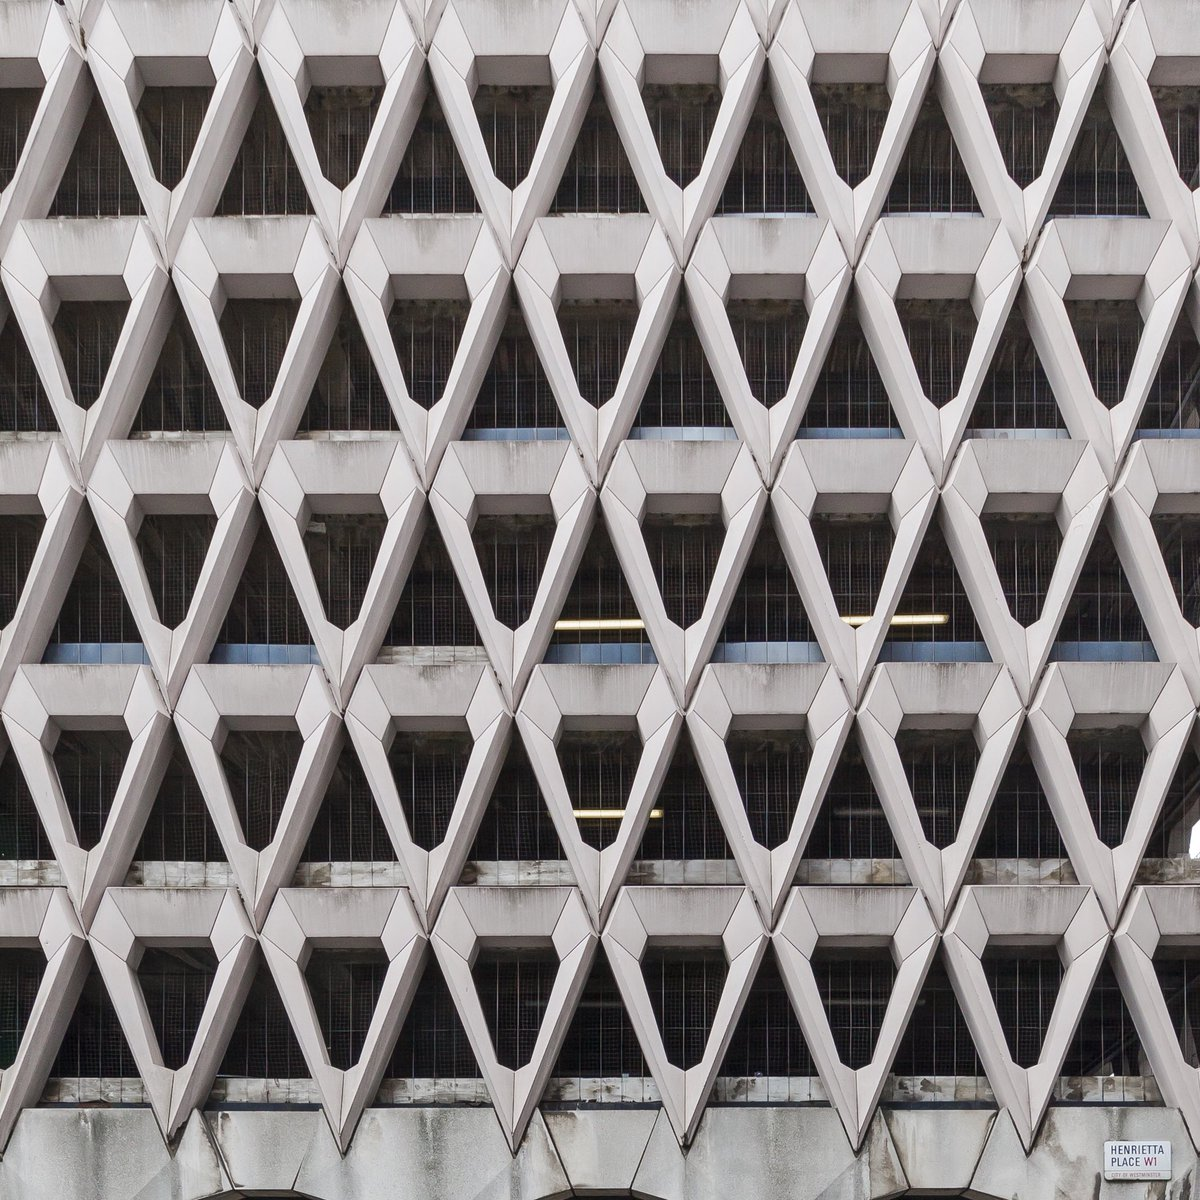 Live long and prosper. Welbeck Street multi-storey car park in #London, United Kingdom. Design by Michael Blampied and Partners for Debenhams, built 1968-1970. Beautiful brutal #architecture - Threatened to be demolished.